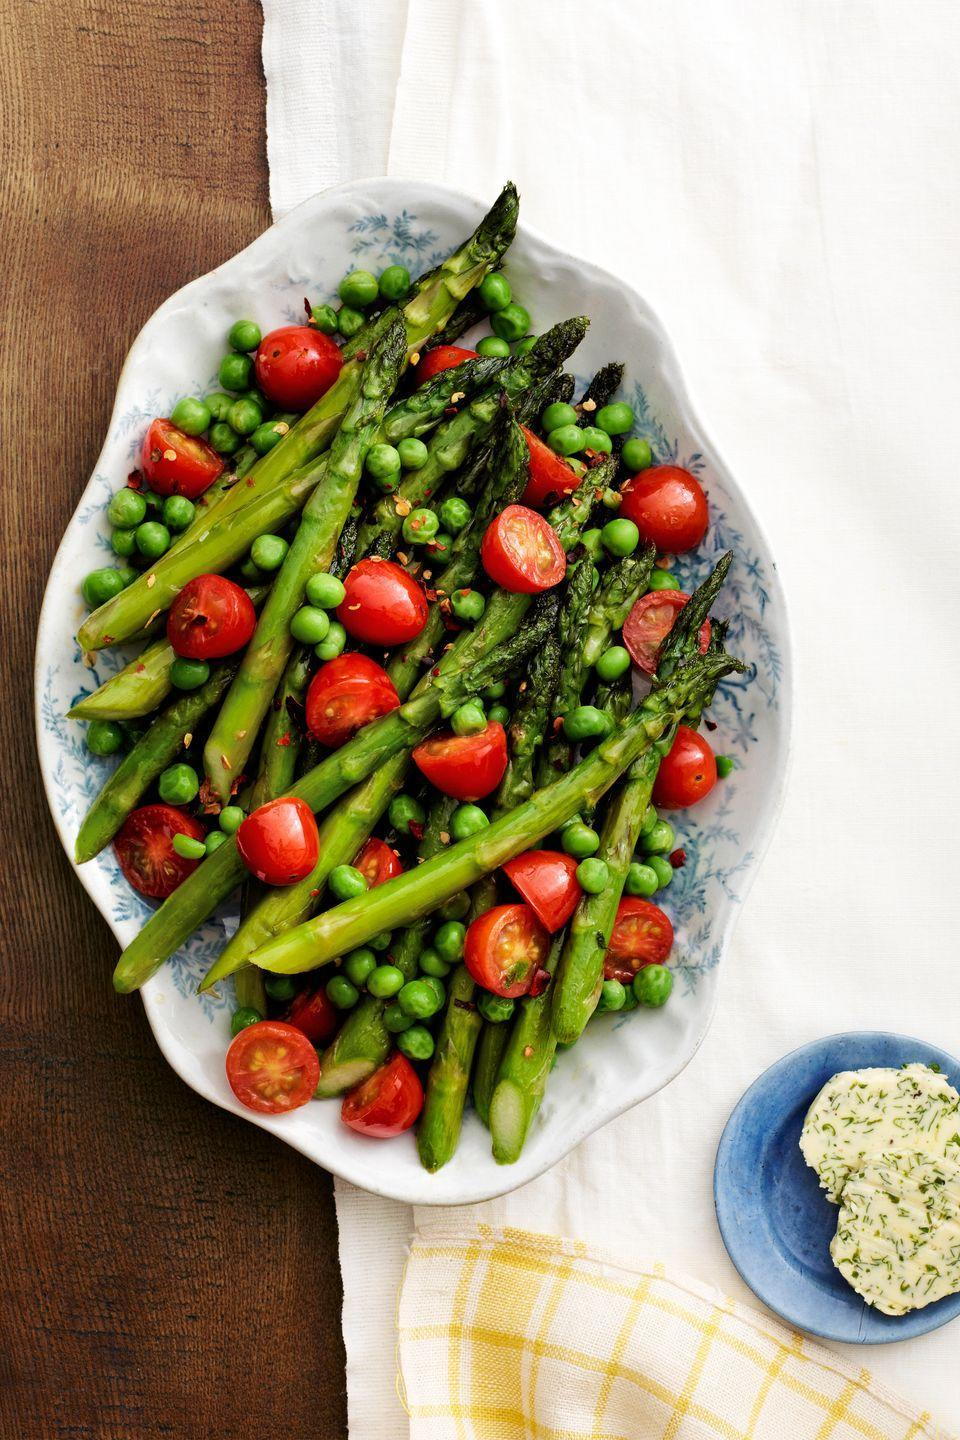 "<p>These garden-fresh vegetables are full of flavor. Sauteed lightly in olive oil and garlic then served with homemade herb butter, they're the perfect addition to any meal.</p><p><strong><a href=""https://www.countryliving.com/recipefinder/asparagus-peas-tomatoes-herb-butter-recipe-clx0414"" rel=""nofollow noopener"" target=""_blank"" data-ylk=""slk:Get the recipe"" class=""link rapid-noclick-resp"">Get the recipe</a>.</strong></p>"